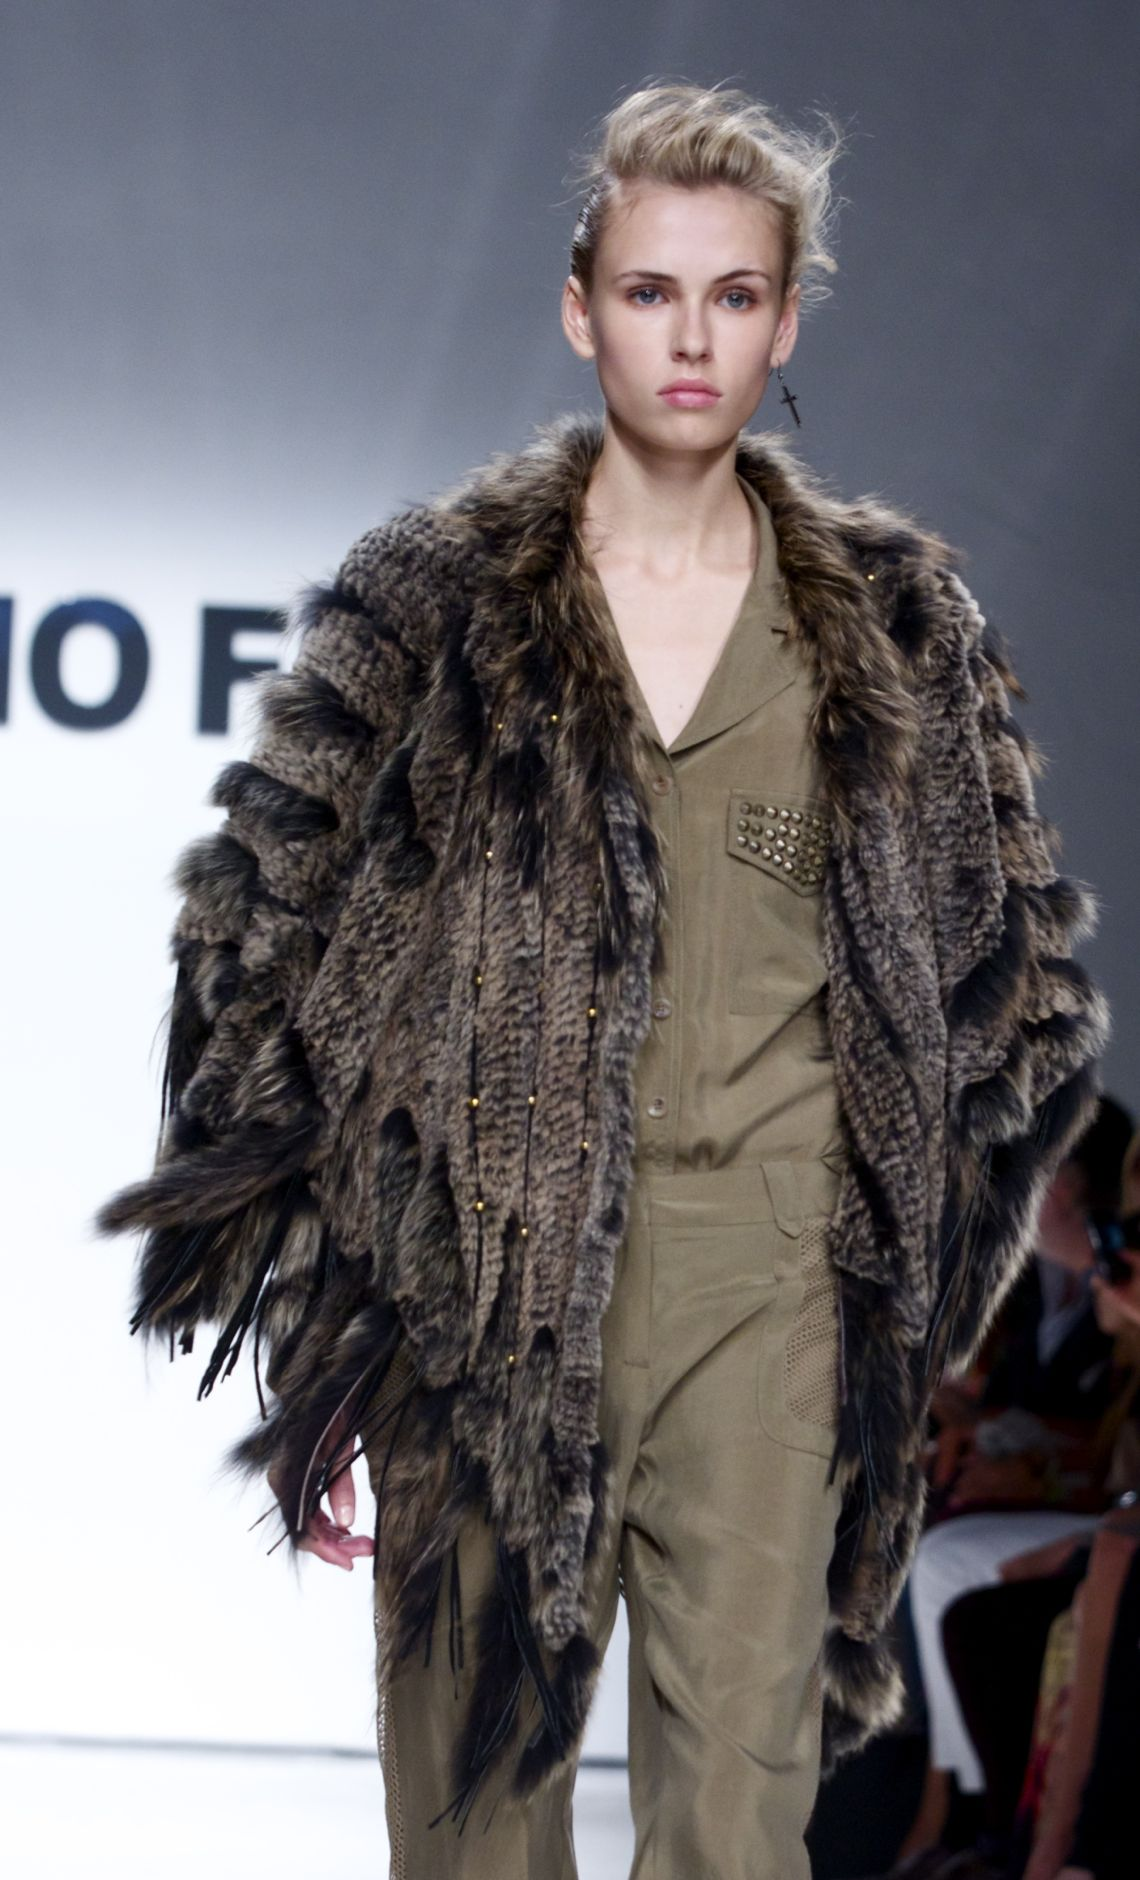 Jo No Fui Women's Collection 2013 Milan Fashion Week